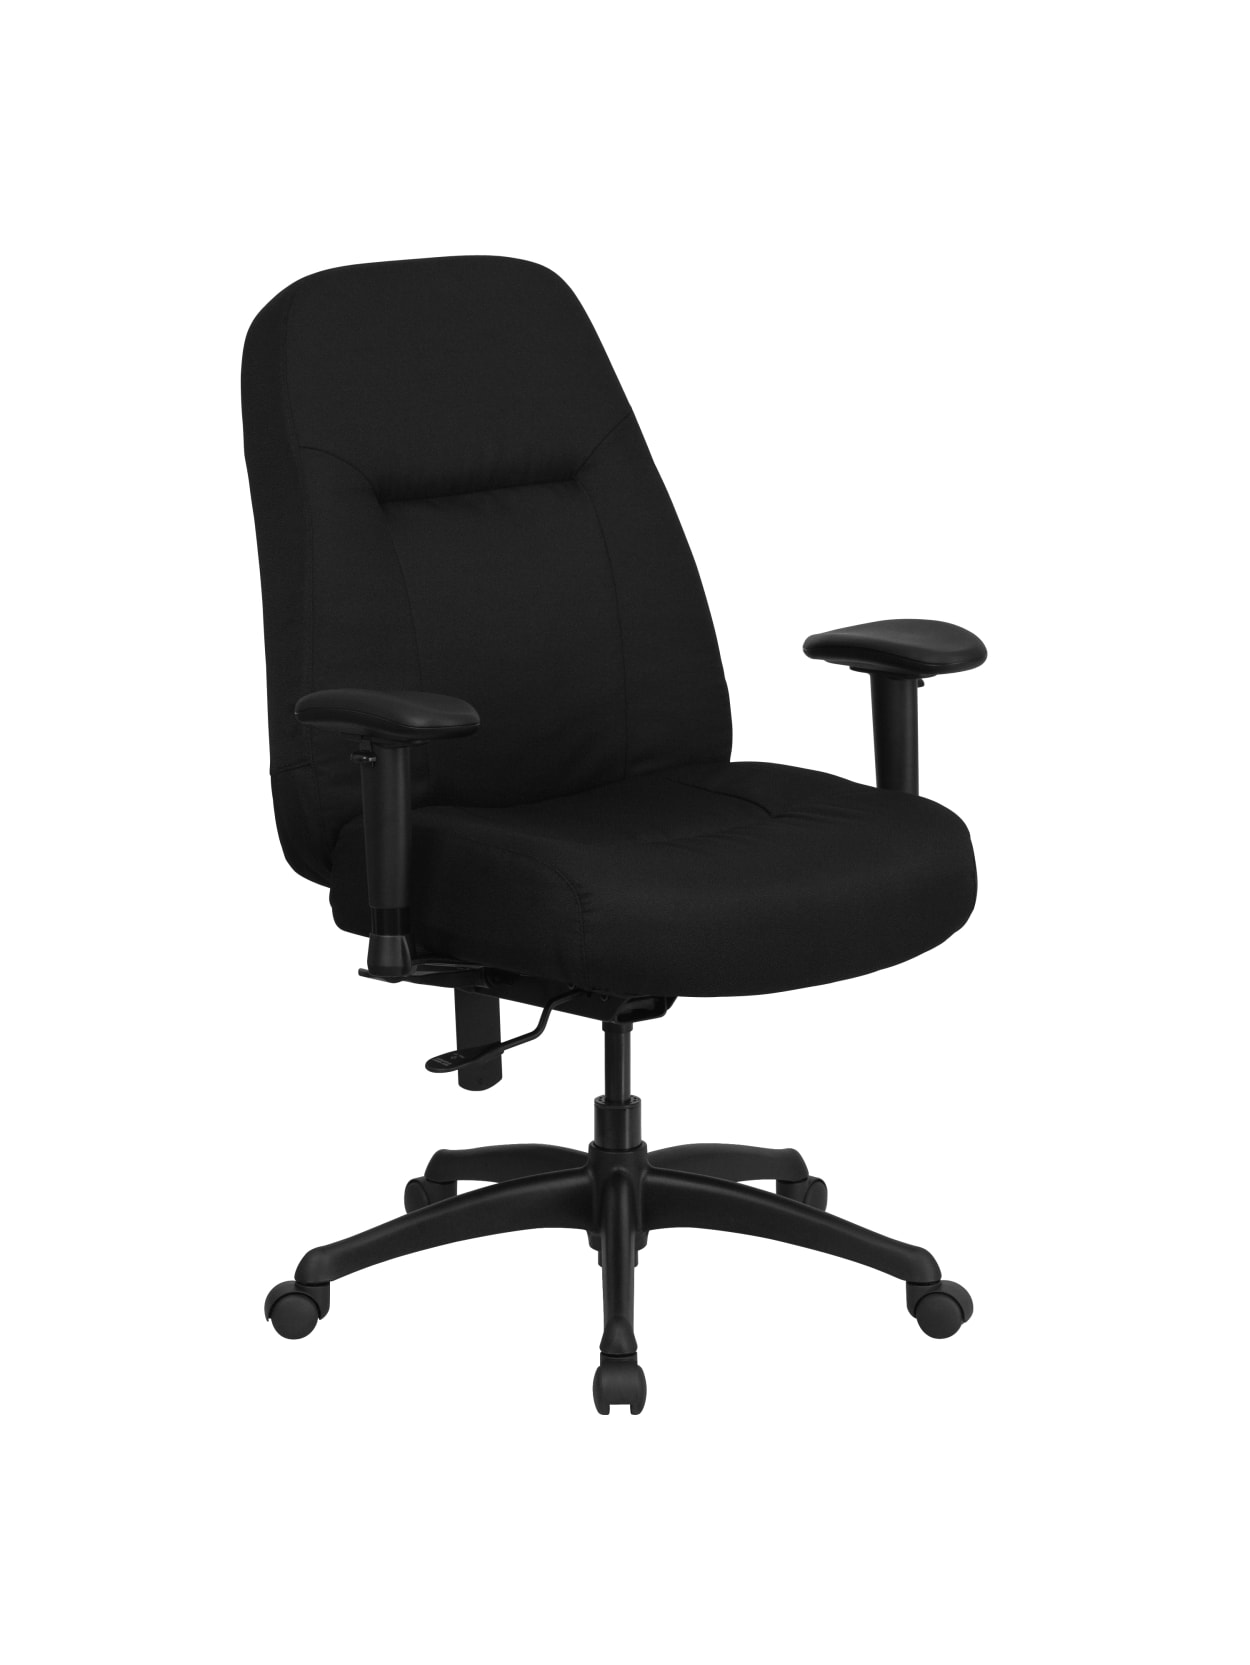 Flash Furniture Hercules Big And Tall Fabric High Back Swivel Office Chair With Extra Wide Seat Black Office Depot